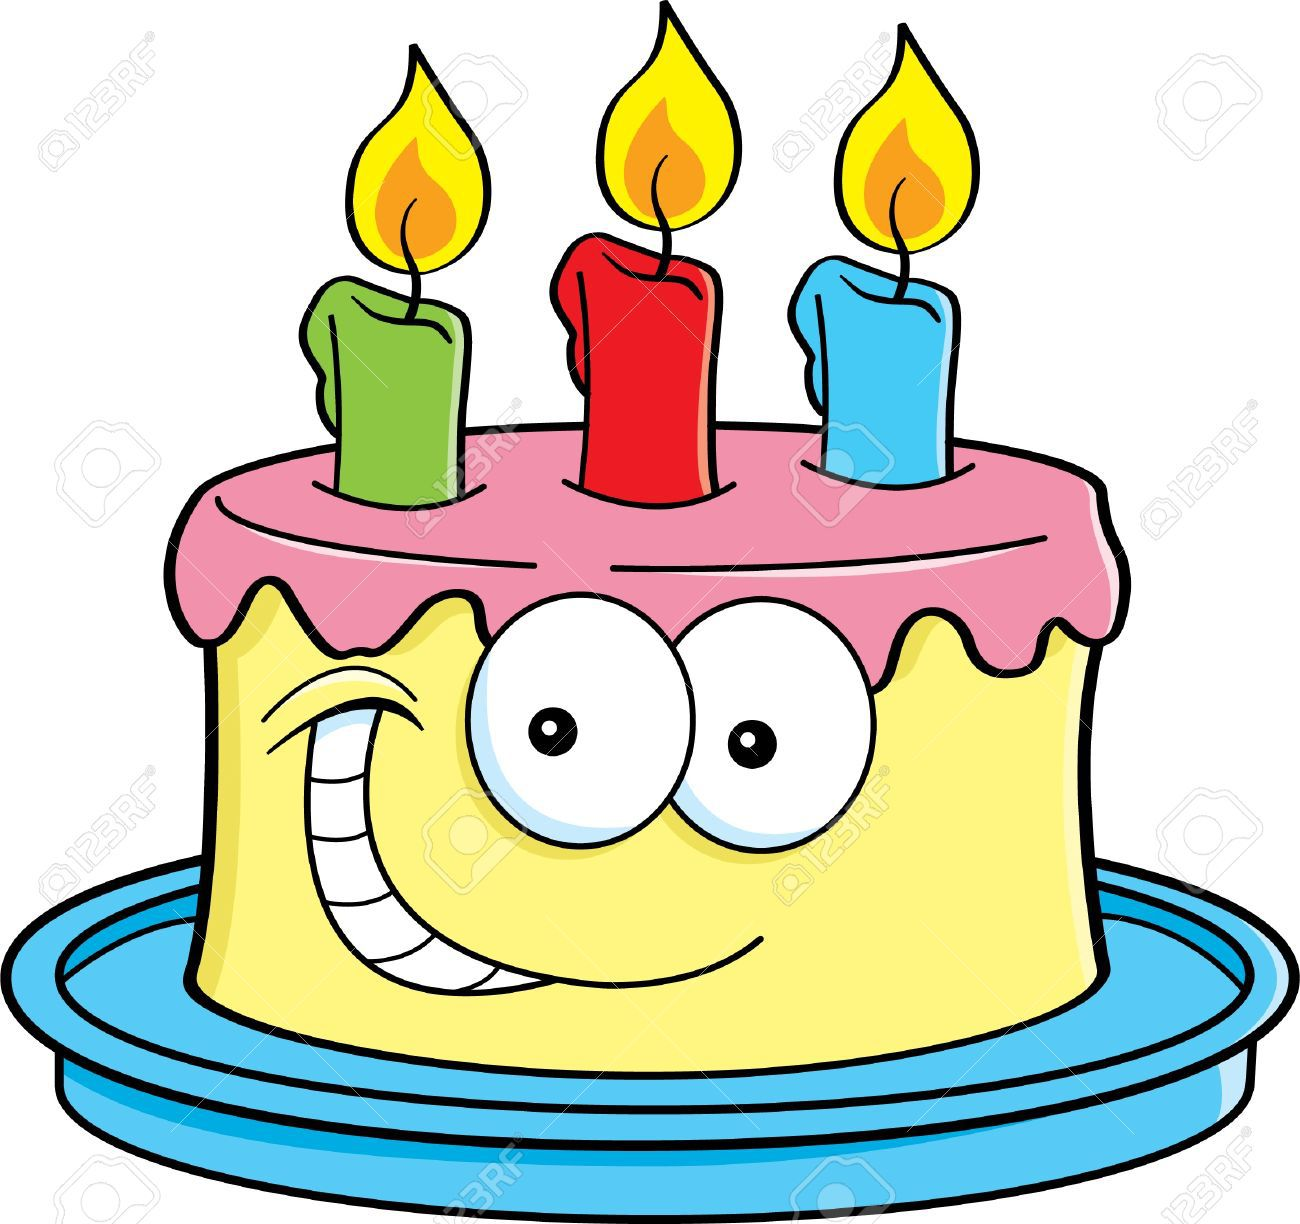 Picture Of A Cartoon Birthday Cake